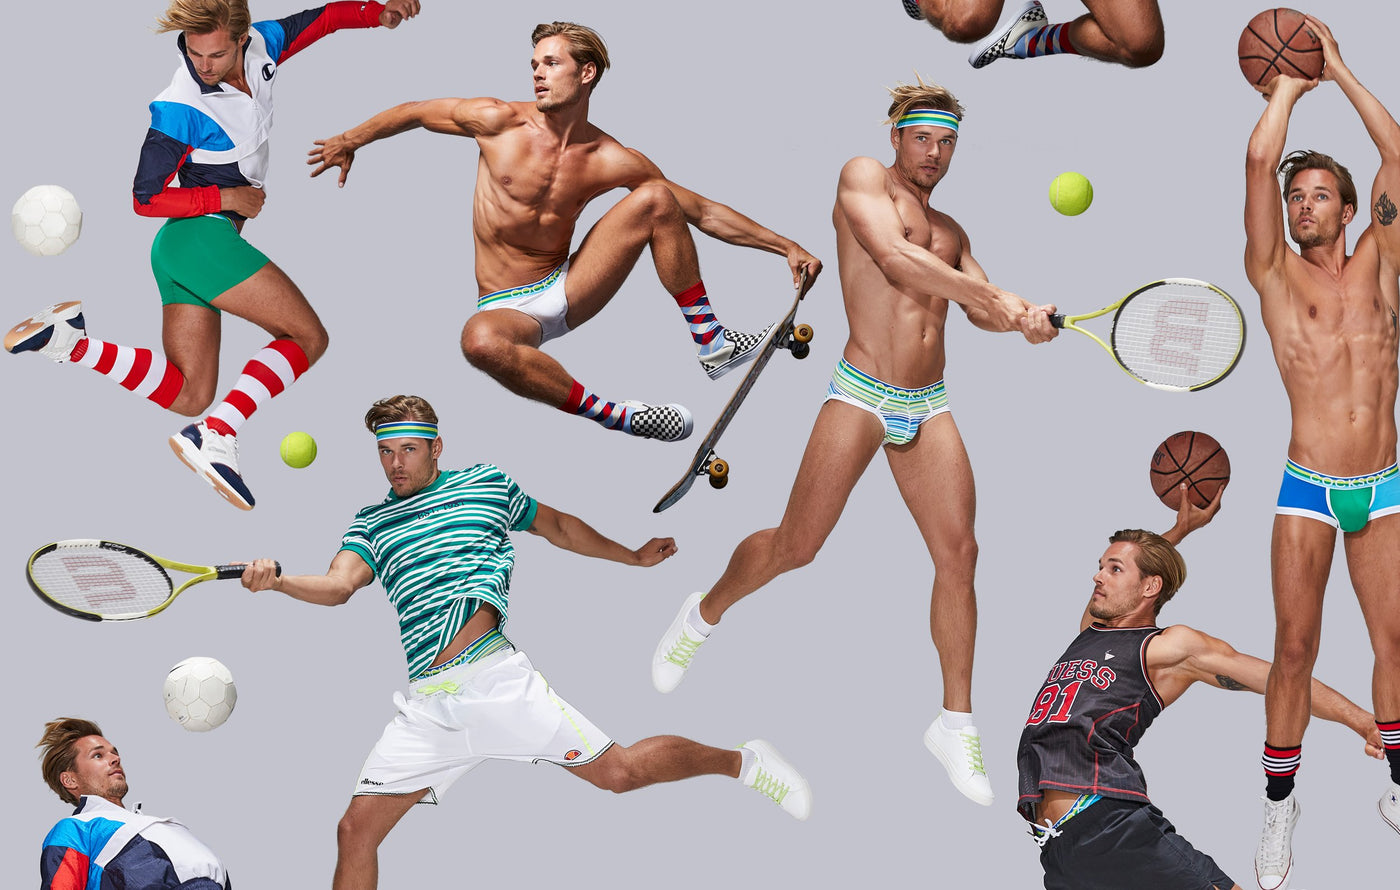 Cocksox Lifestyle image featuring various Freshballs collection underwear